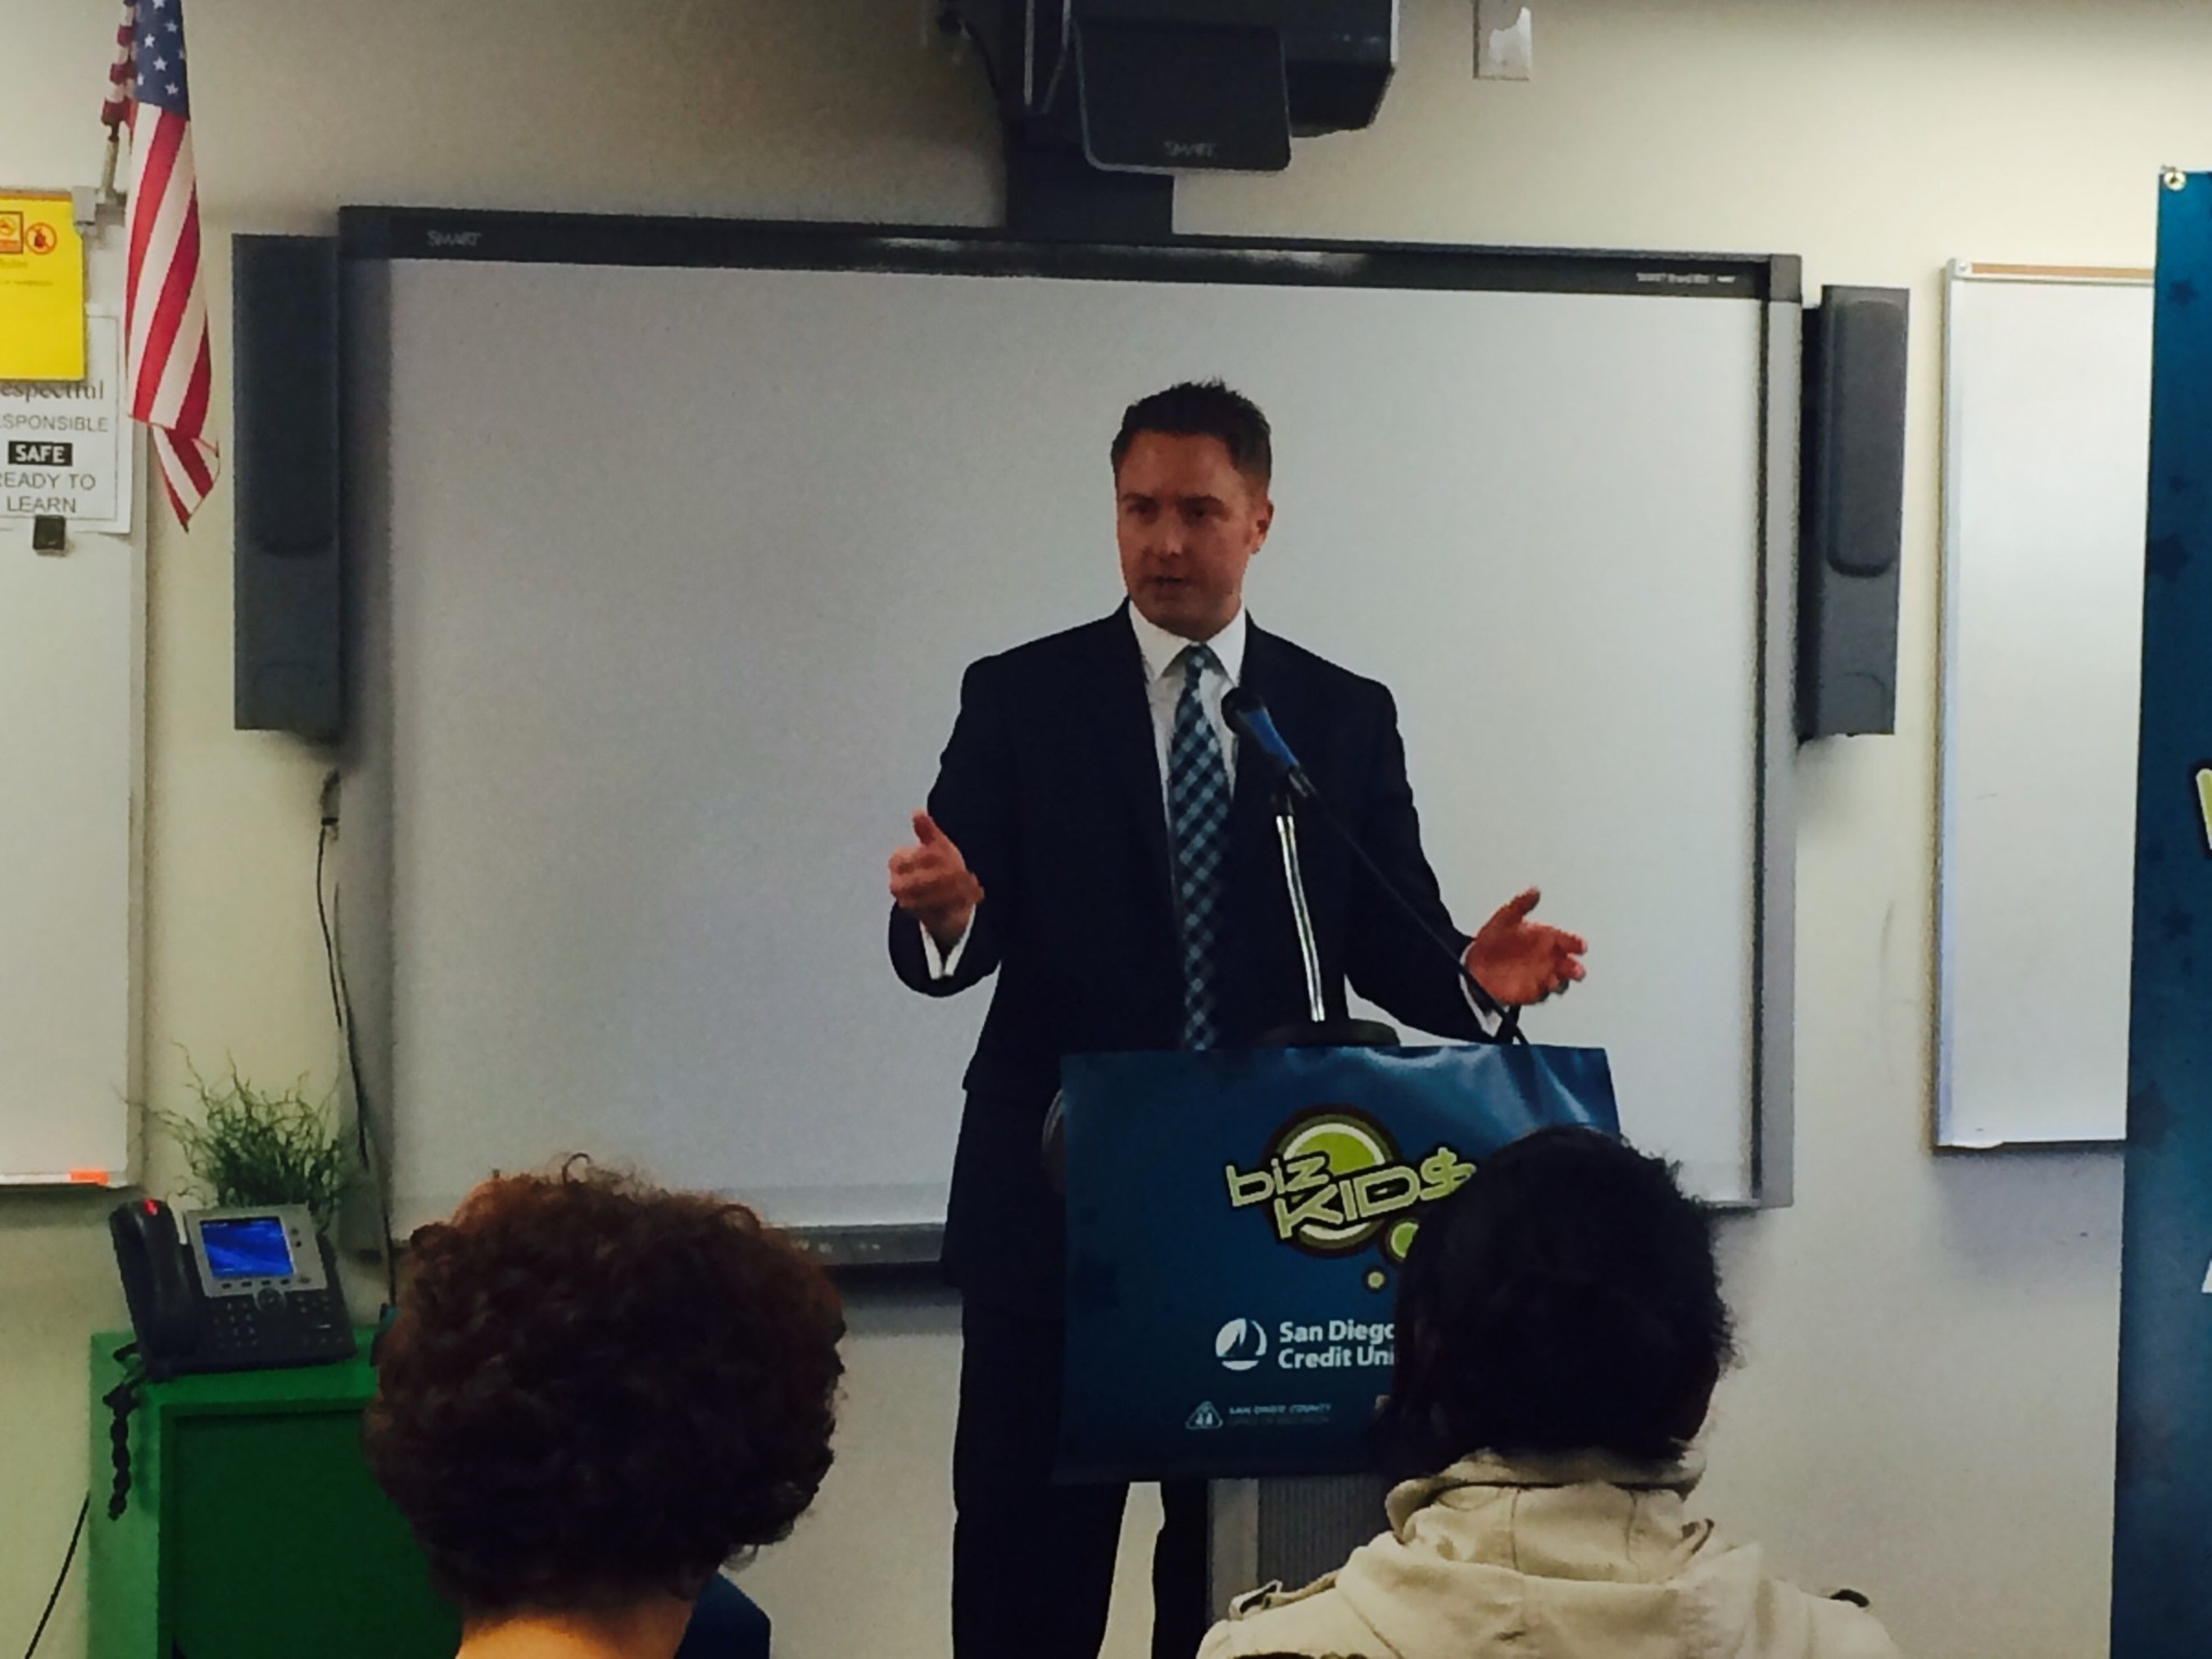 SDCCU Executive Vice President of Marketing and Business Development Nathan Schmidt discusses the SDCCU Biz Kid$ Program and the long-term economic benefits of financial education at a press conference held Friday, May 22, 2015 at Monarch School in San Diego.